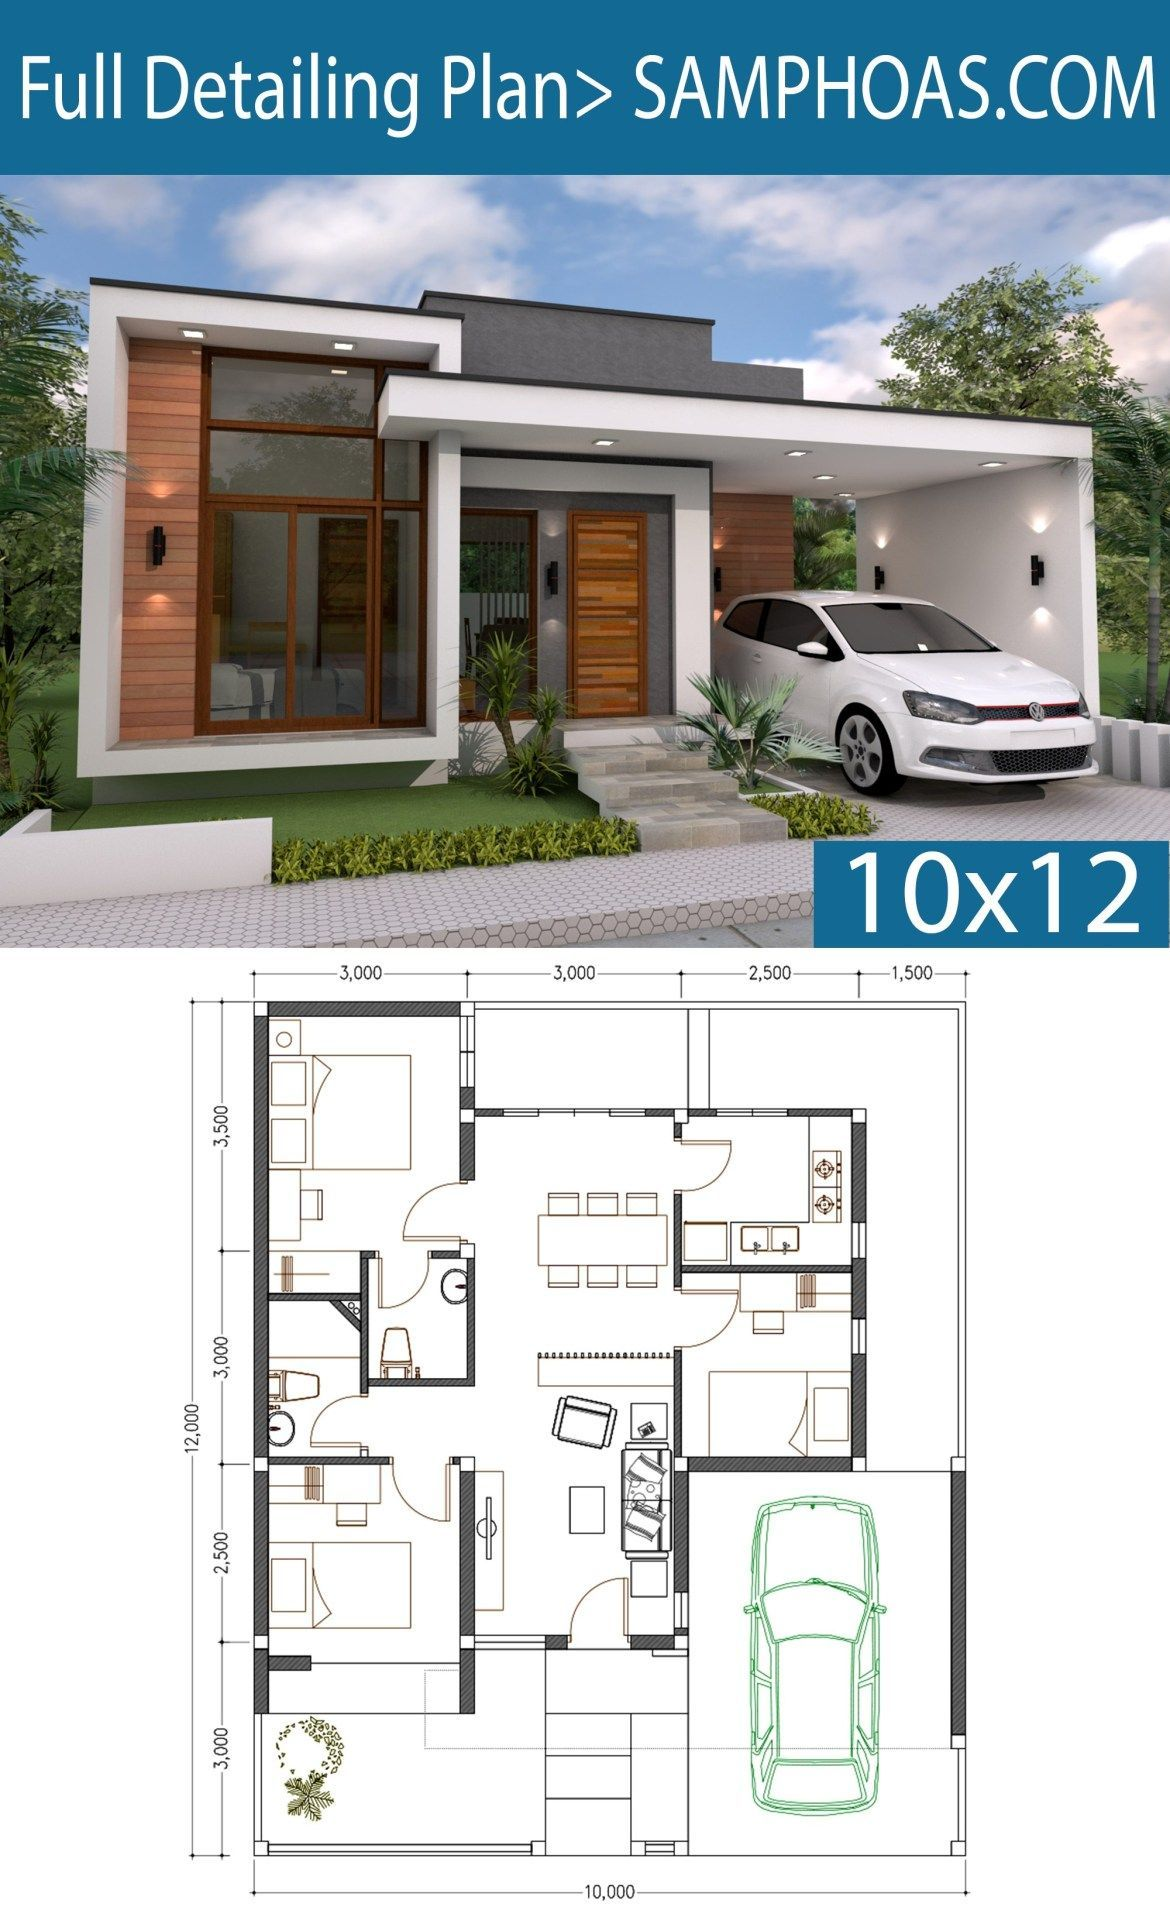 12 Genius Designs Of How To Build Bedroom Designs Modern Interior Design Ideas Photos In 2021 Bungalow House Plans Simple House Design Modern Style House Plans